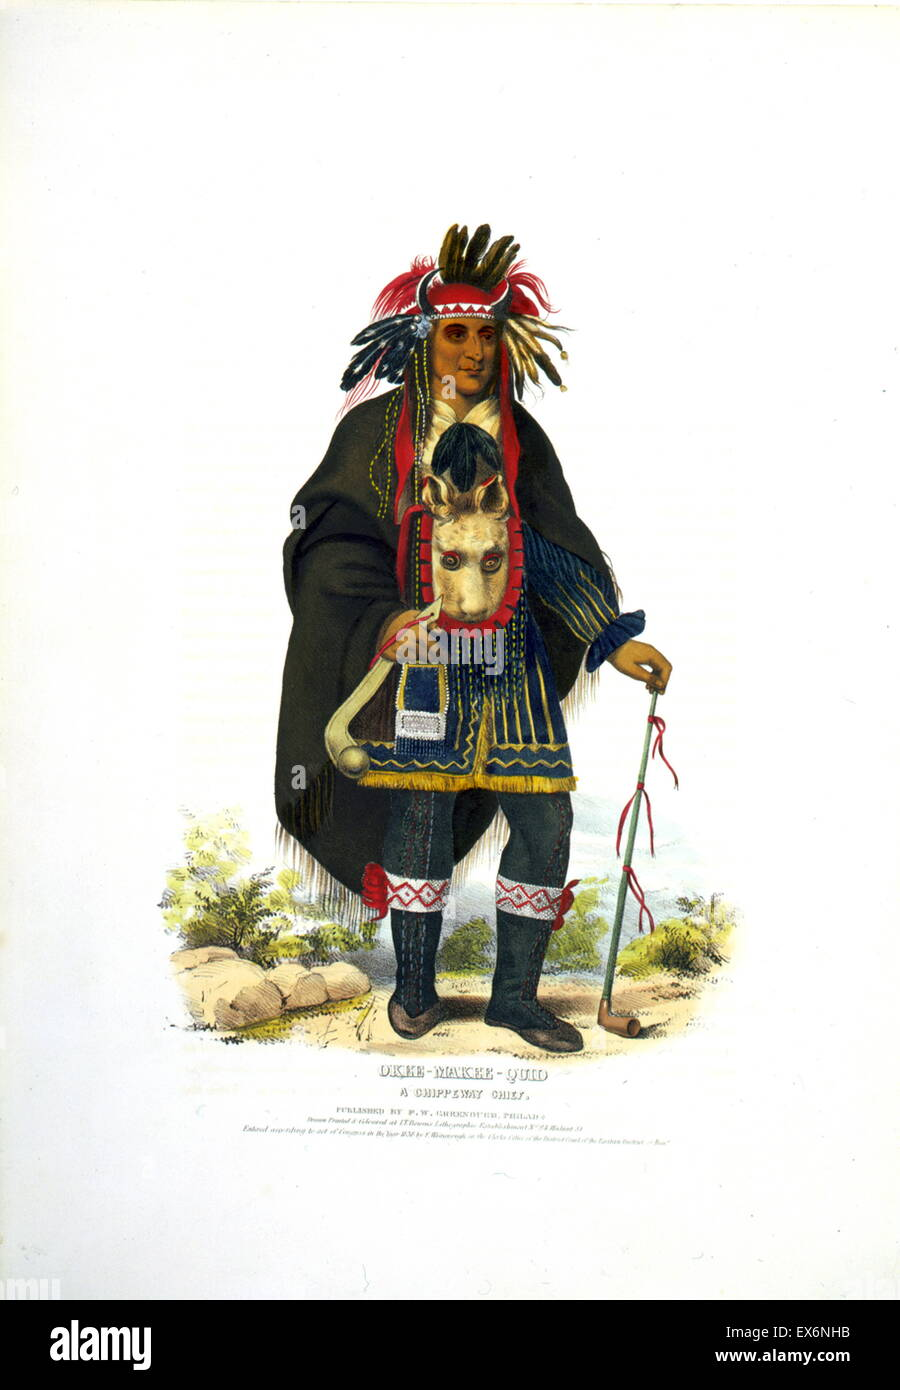 Okee-Makee-Quid a Chippewa chief wearing a buffalo headdress, holding a war club and a long peace pipe. The Ojibwe - Stock Image